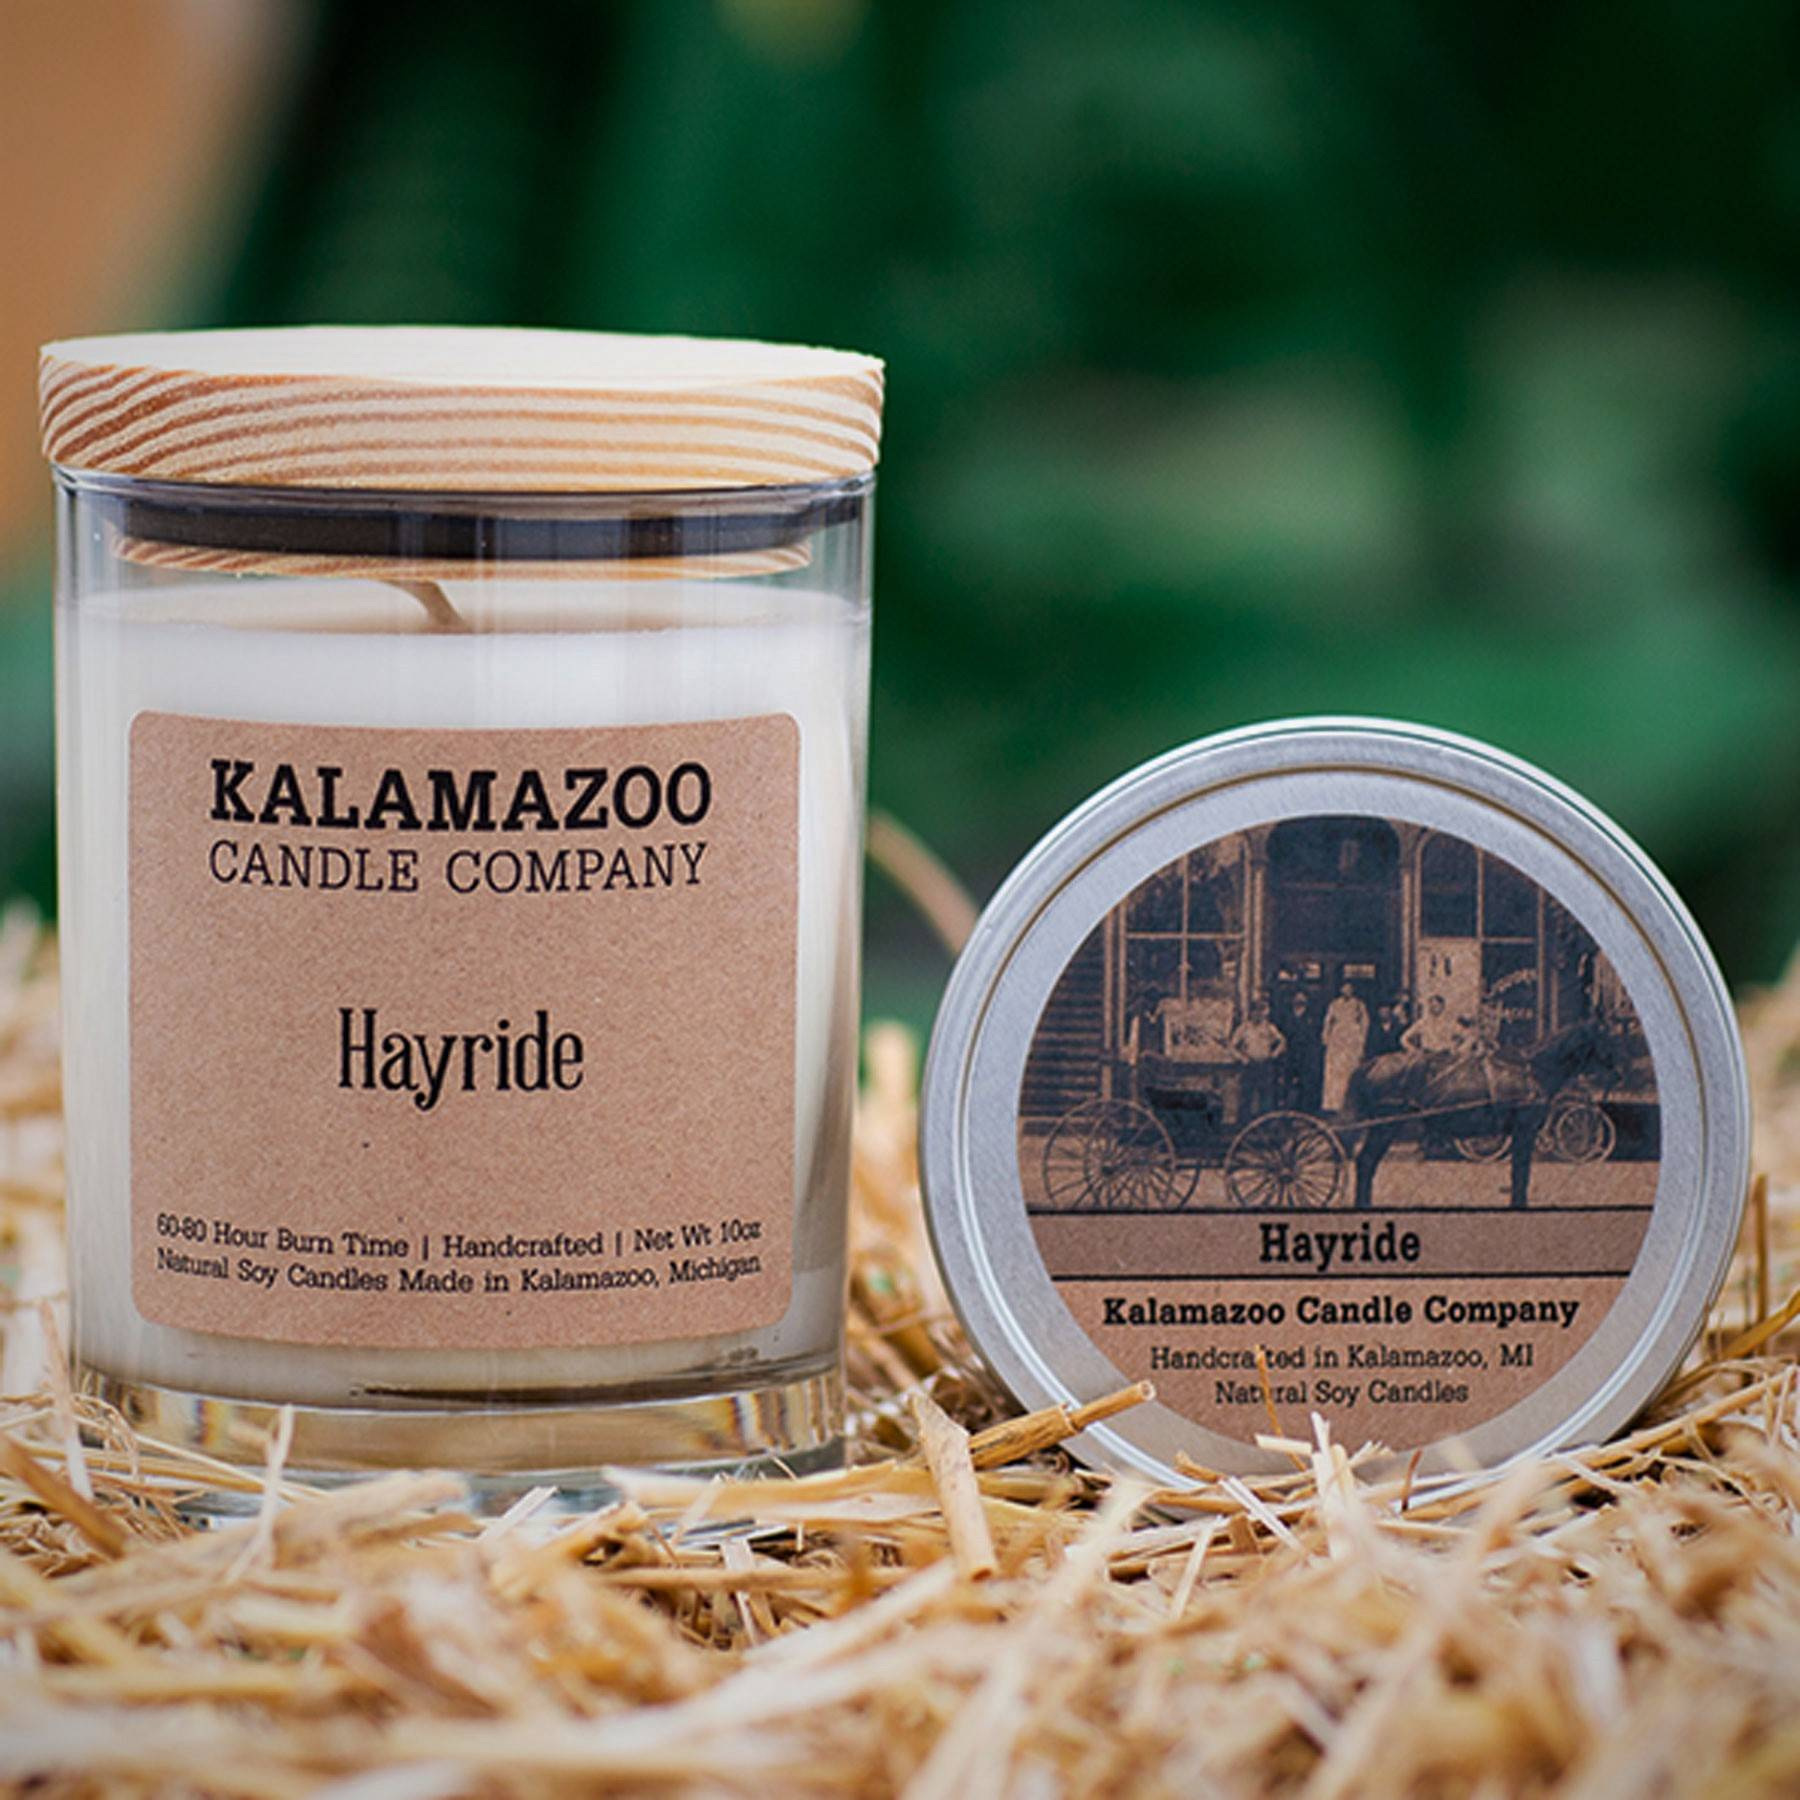 Hayride natural soy wax scented candle